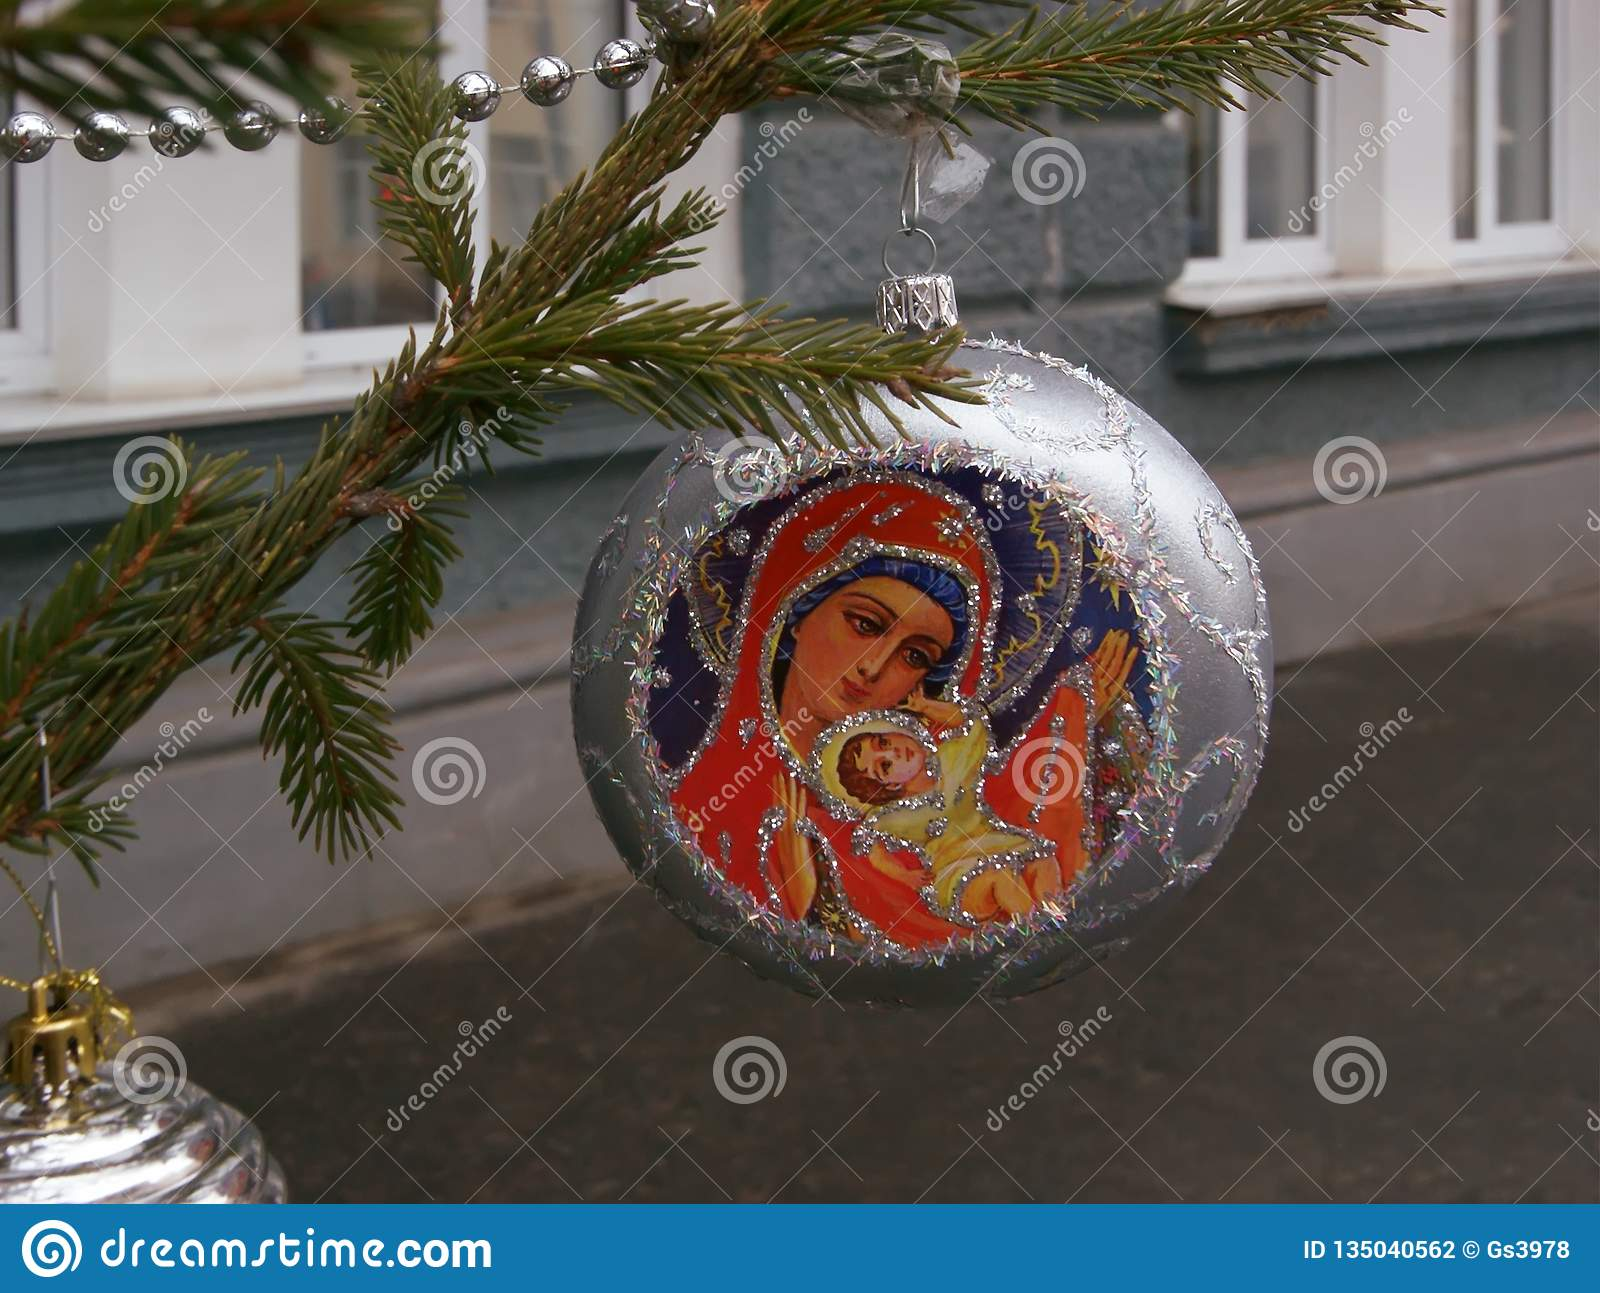 Christmas Decorations On The Tree Stock Photo - Image of ...